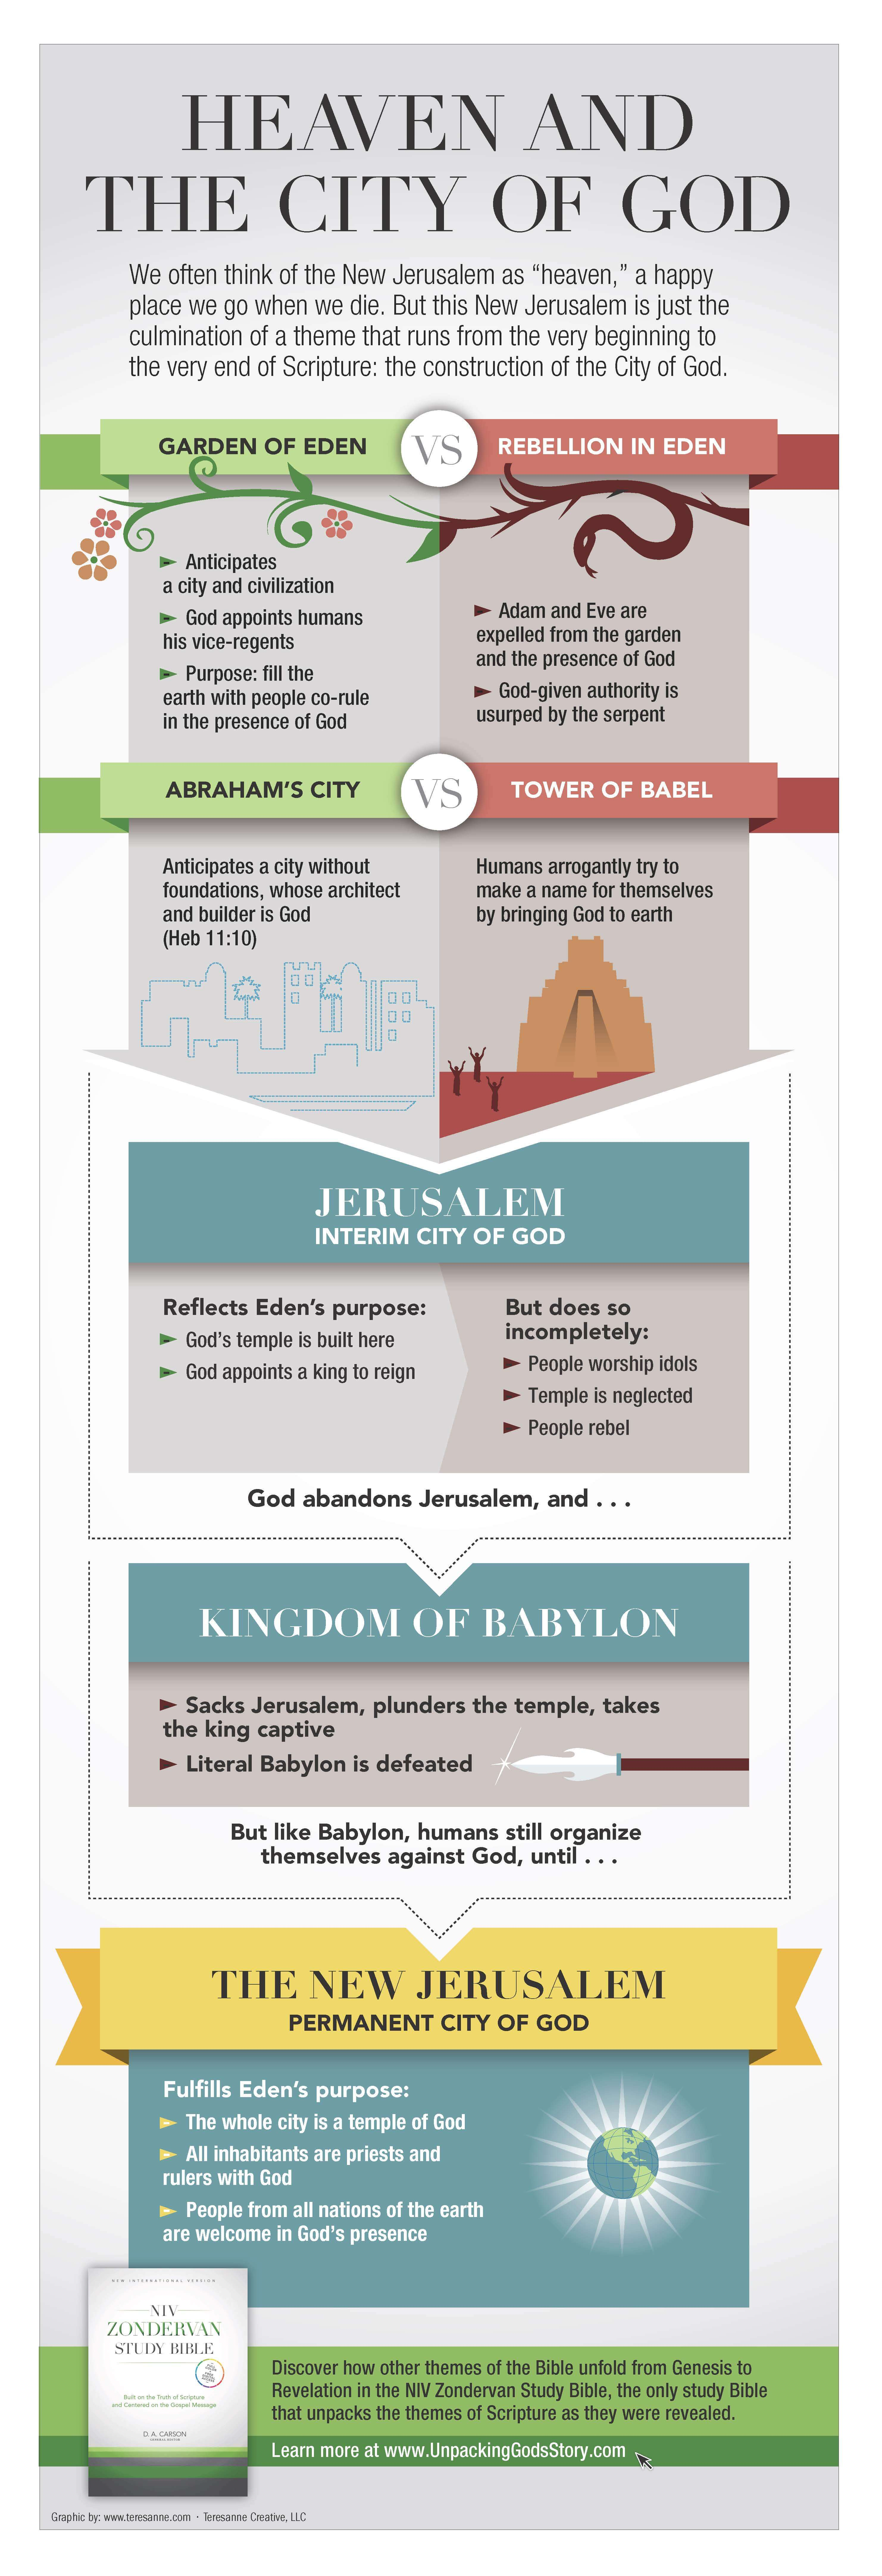 Enlarge this Infographic on Heaven and the City of God from the NIV Zondervan Study Bible